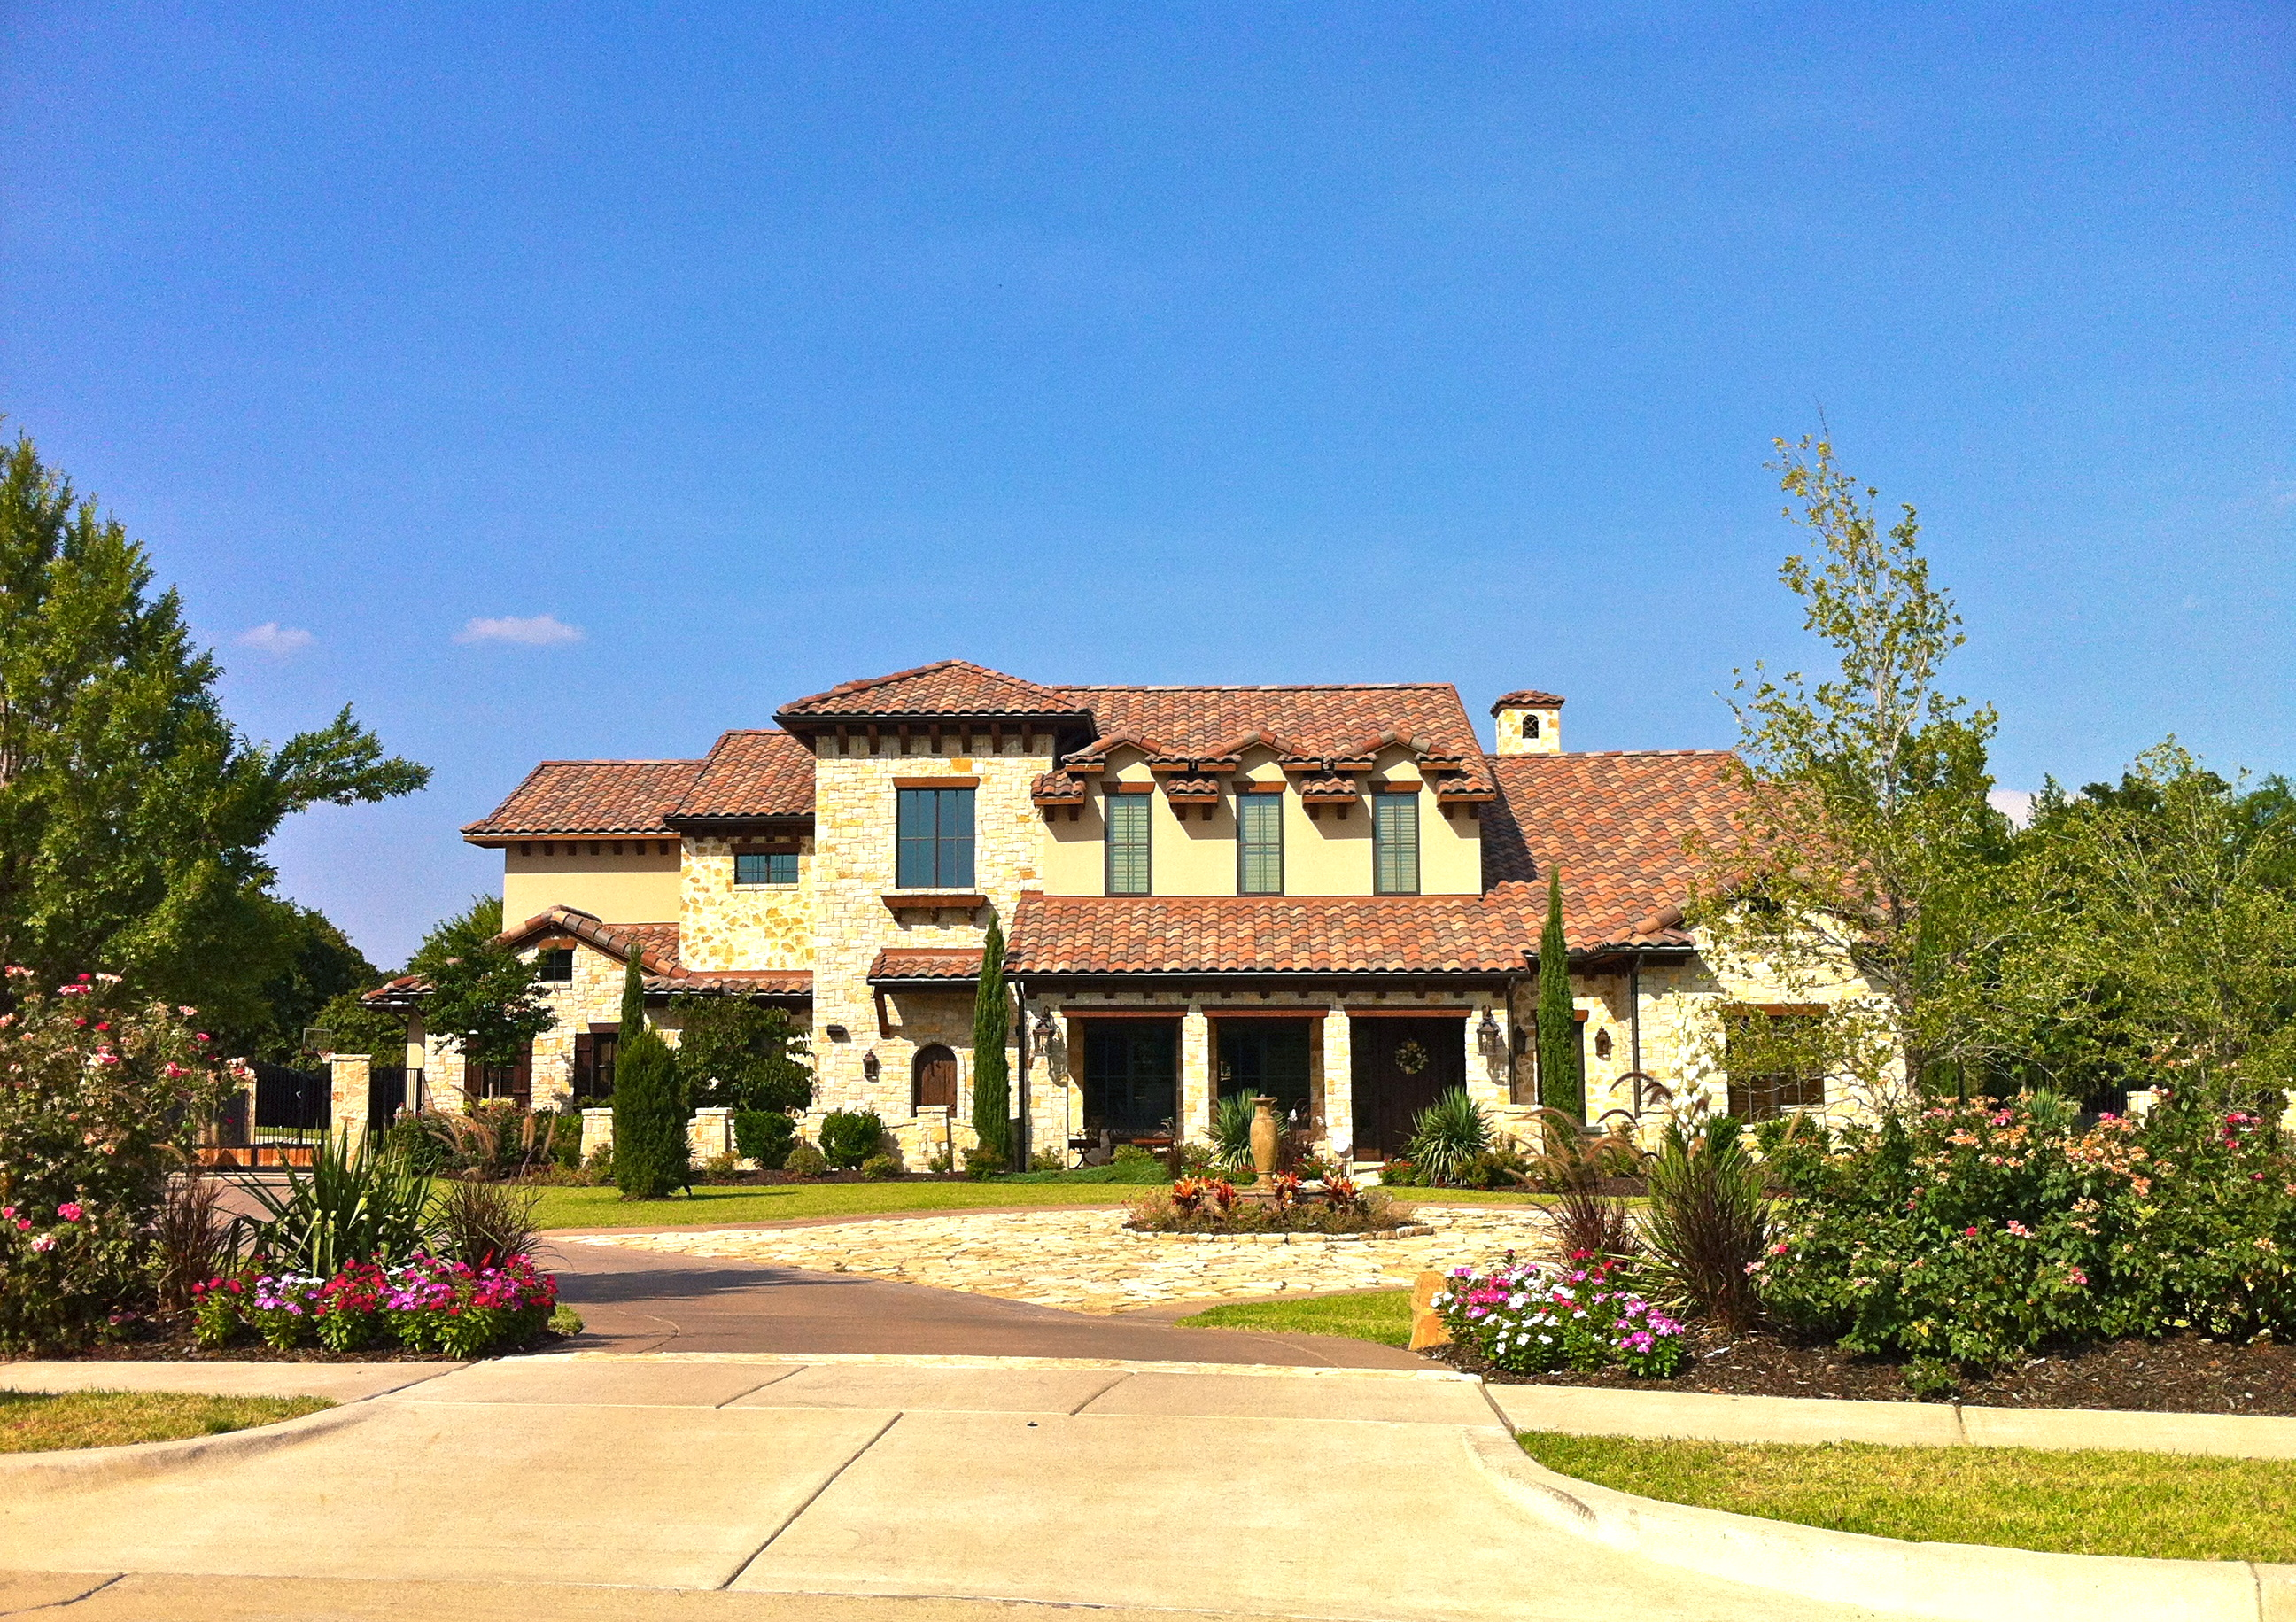 File:Mediterranean house in Southlake.JPG - Wikimedia Commons